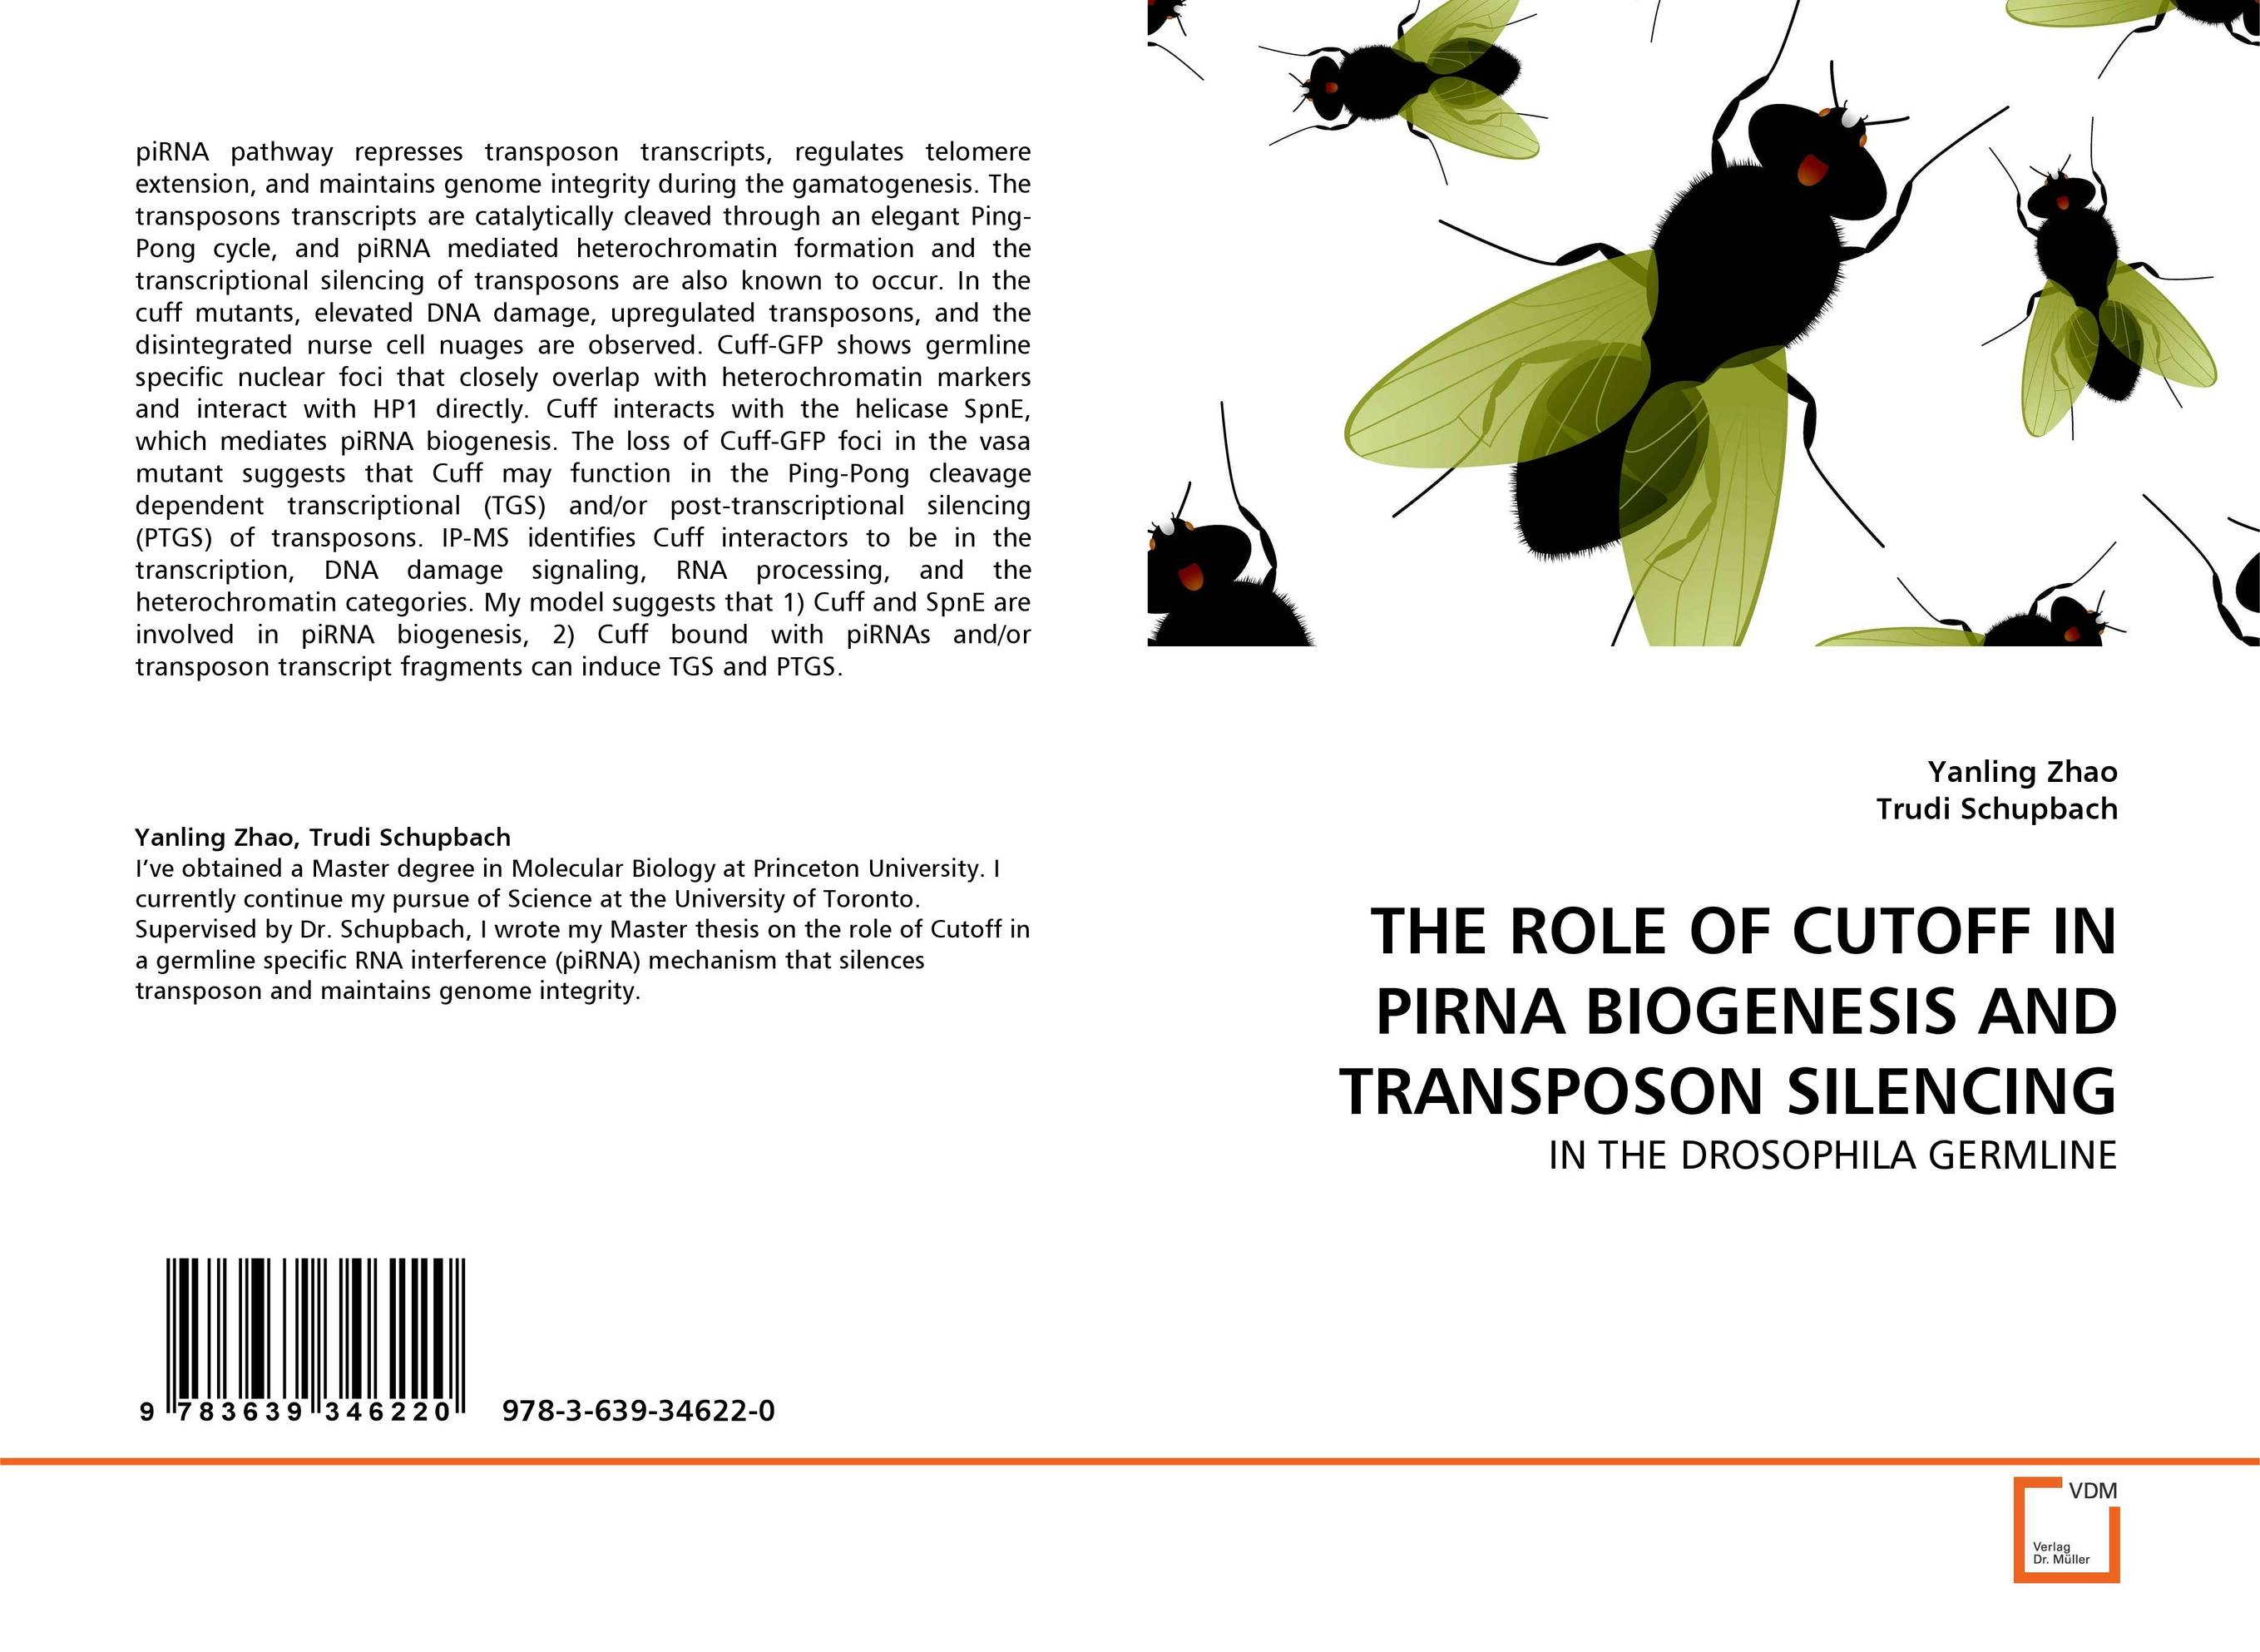 THE ROLE OF CUTOFF IN PIRNA BIOGENESIS AND TRANSPOSON SILENCING цена и фото